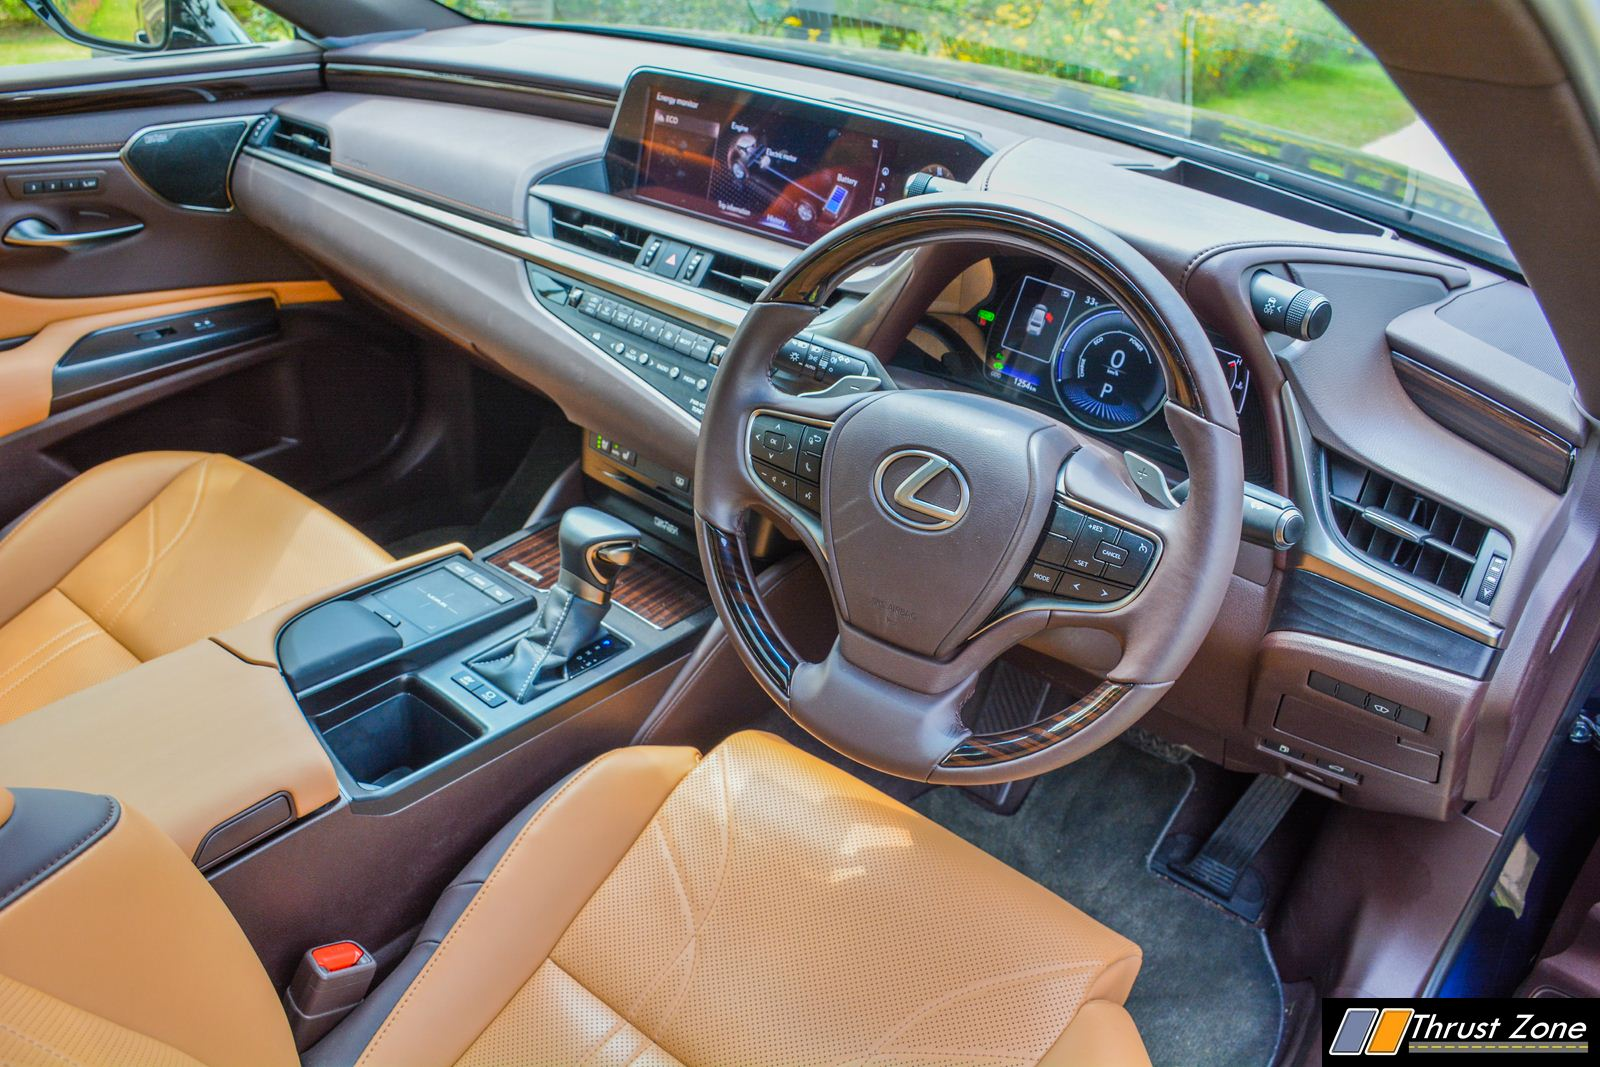 https://www.thrustzone.com/wp-content/uploads/2018/09/2019-Lexus-ES-India-300h-Review-10.jpg